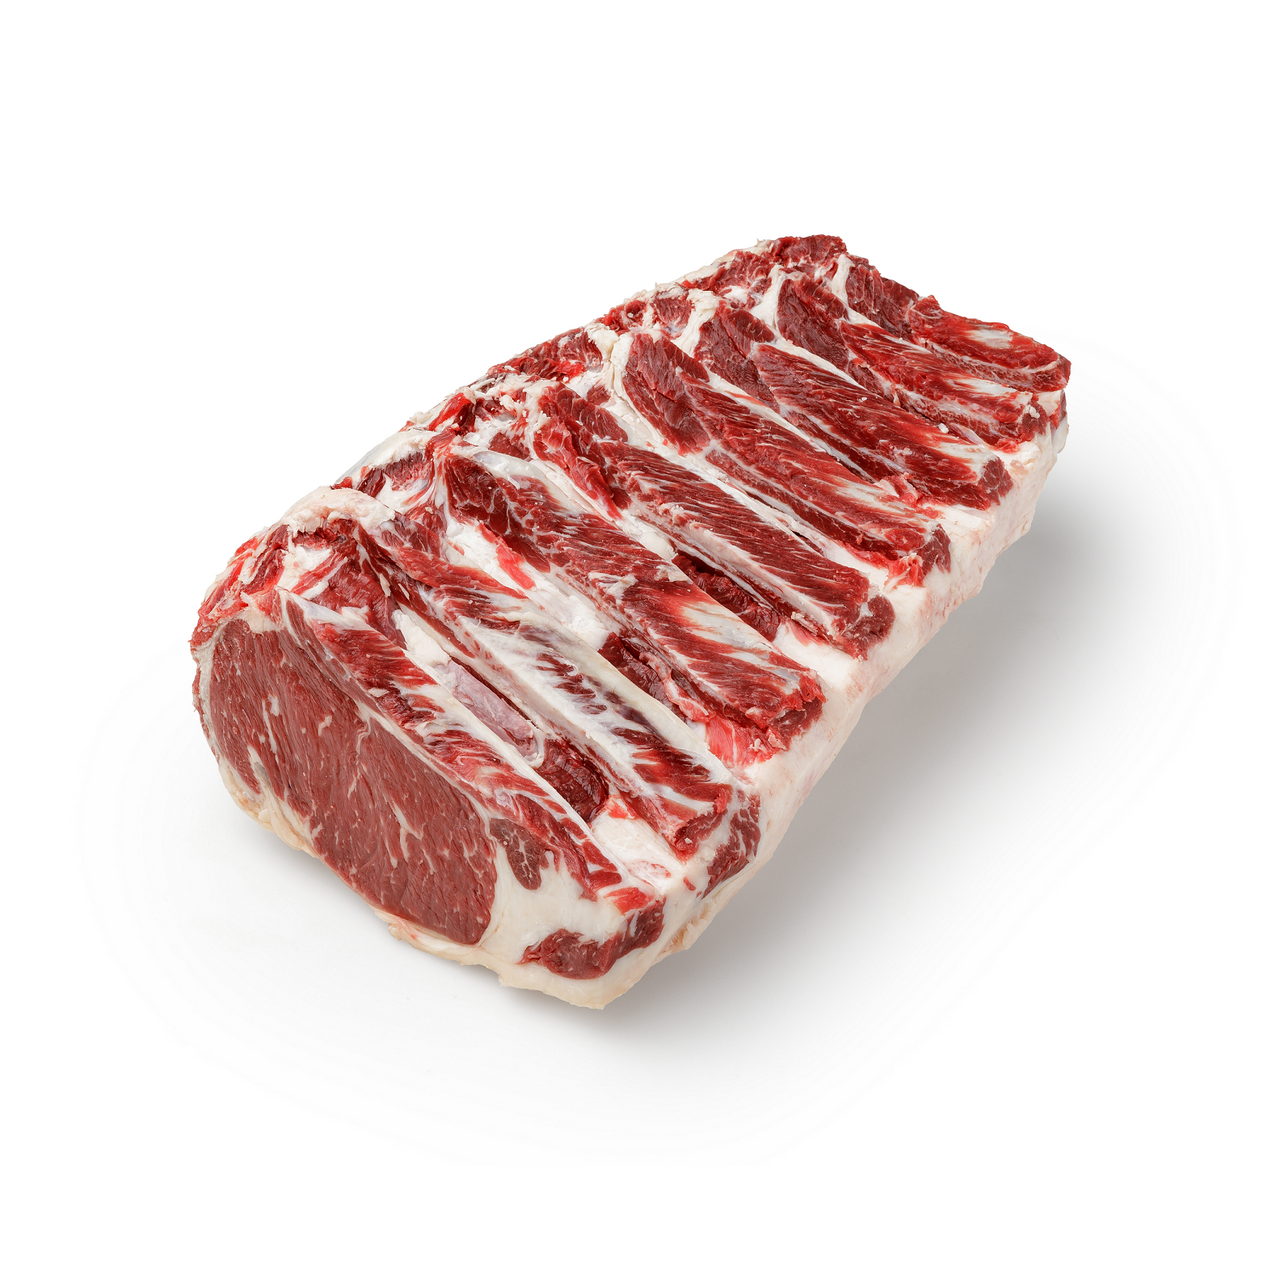 Natural Prime Whole Ribeye Special (16-18 lbs.) - While Supplies Last